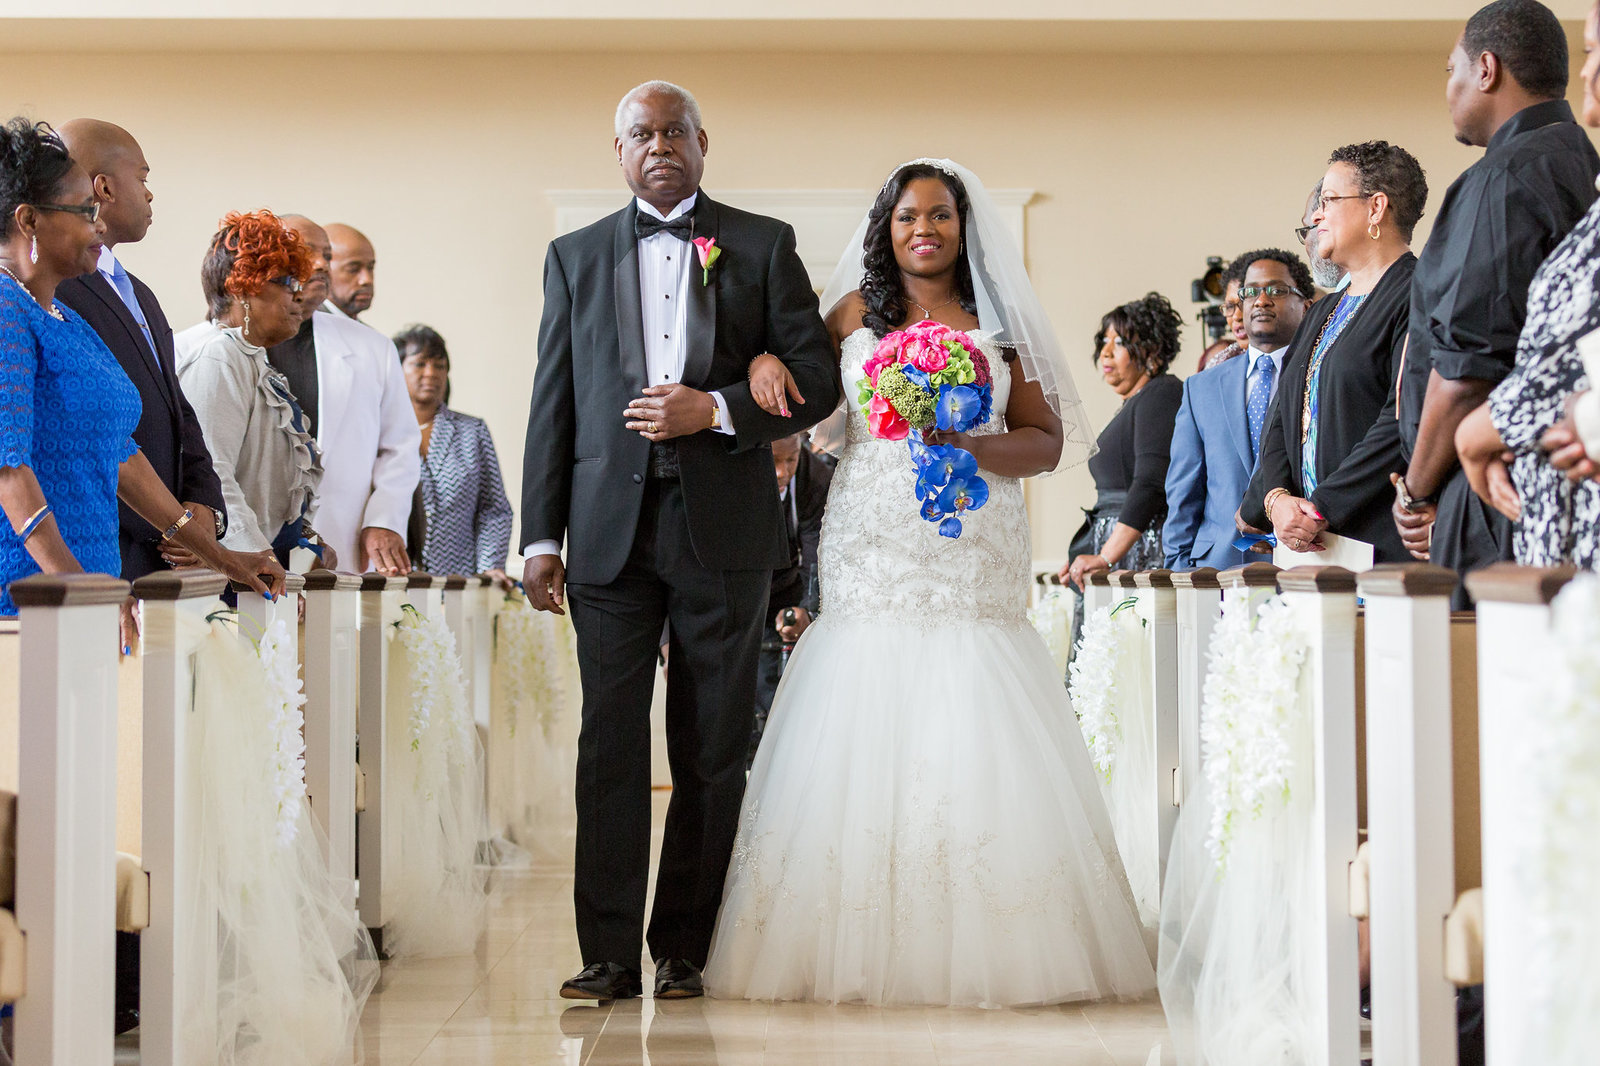 best Atlanta wedding photographers - Mecca Gamble Photography